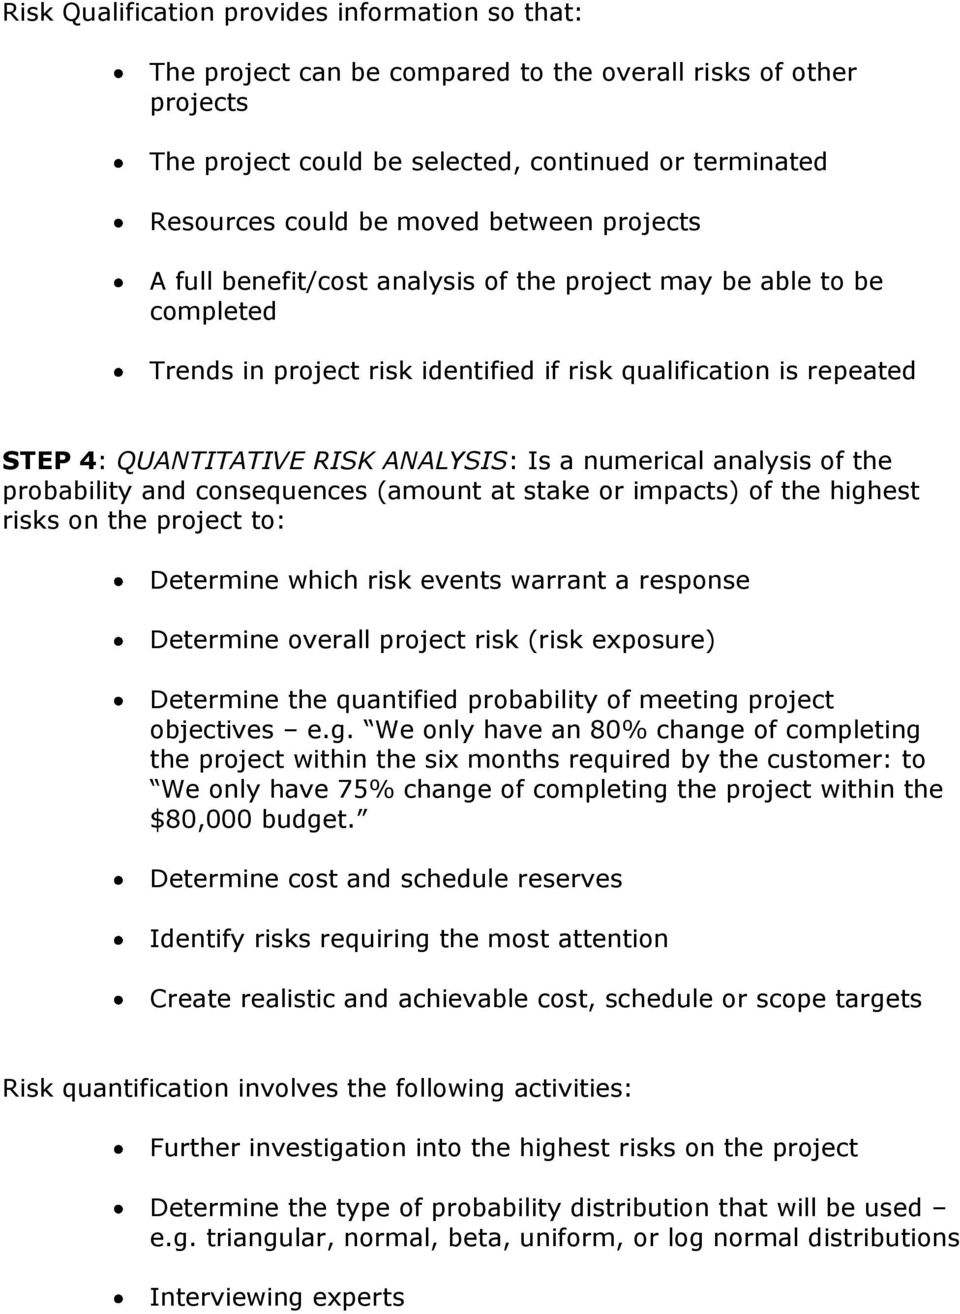 numerical analysis of the probability and consequences (amount at stake or impacts) of the highest risks on the project to: Determine which risk events warrant a response Determine overall project